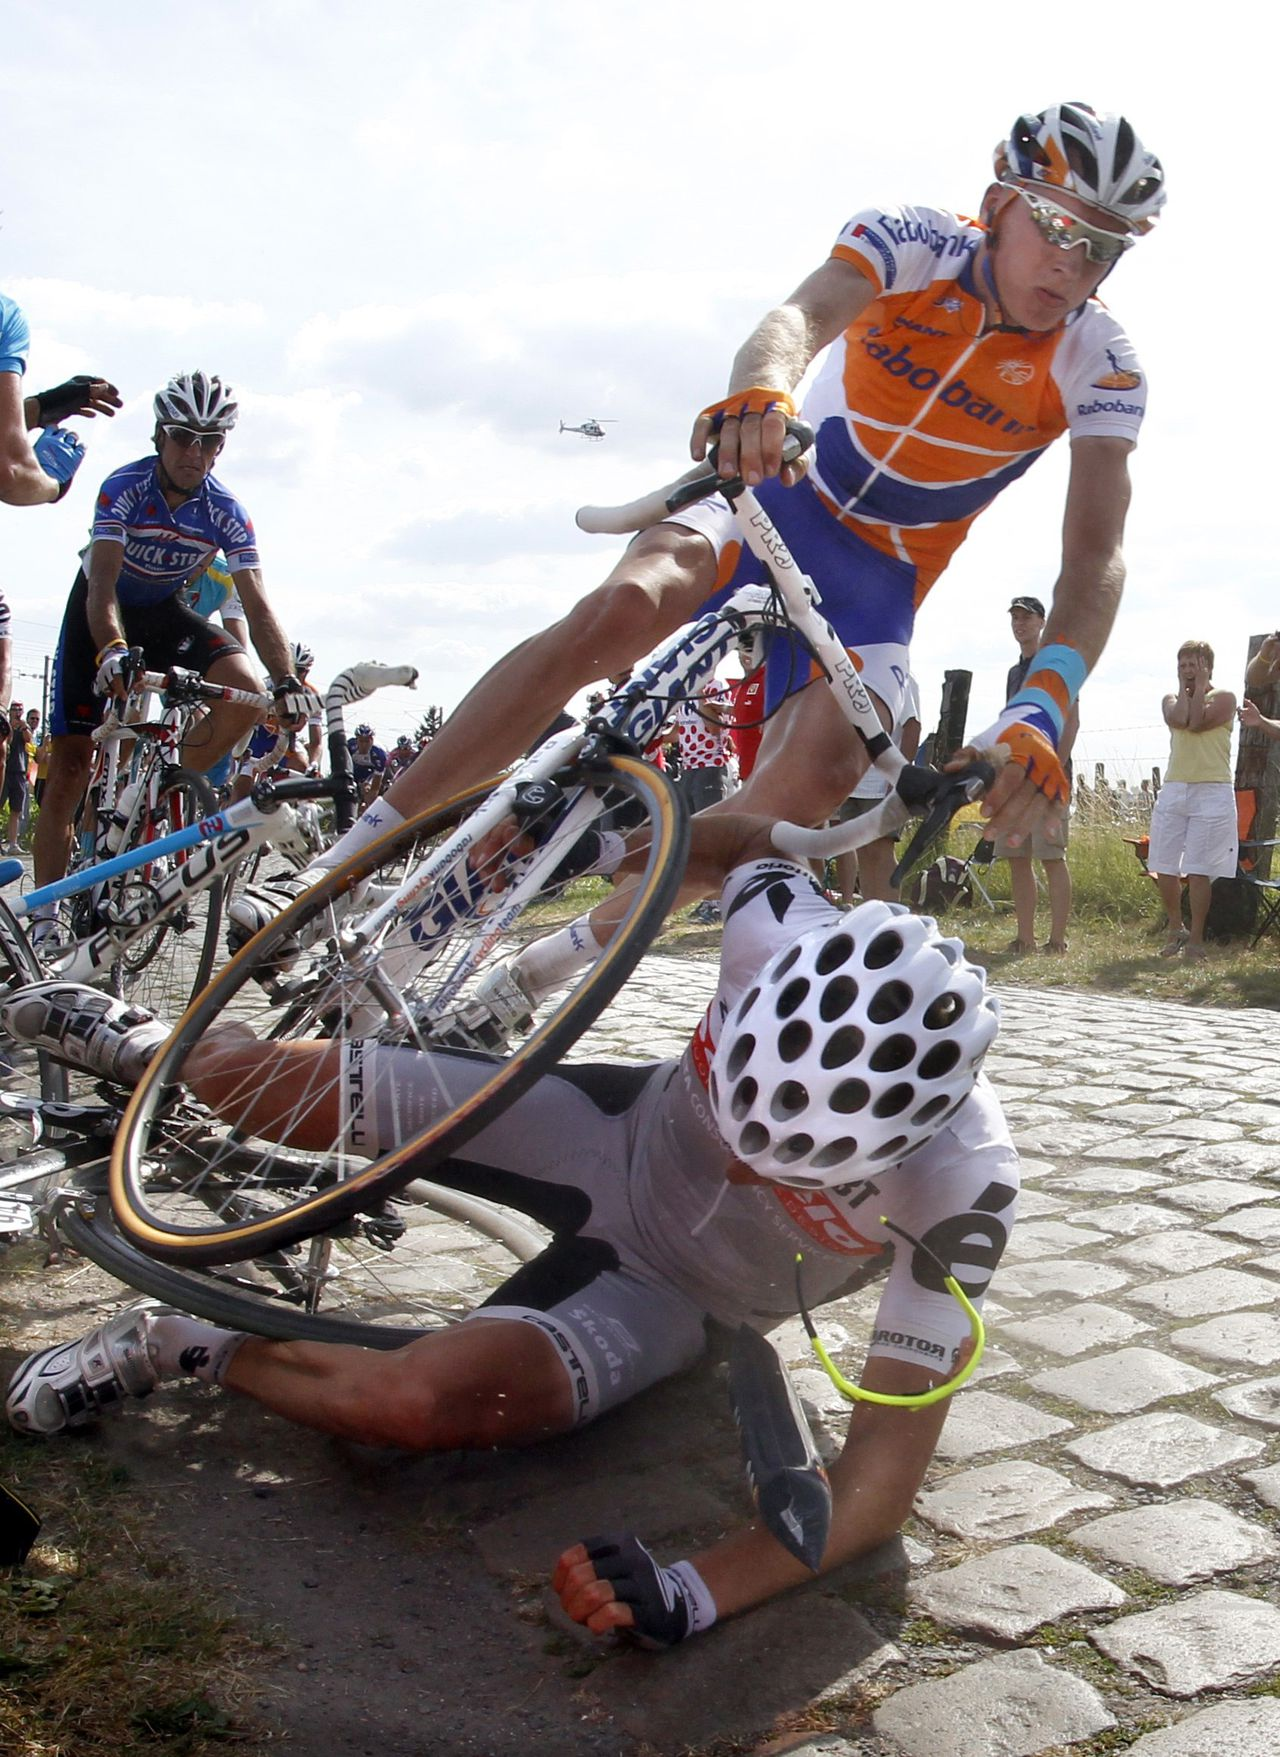 Riders fall on the cobblestones during the third stage of the Tour de France cycling race between Wanze and Arenberg-Porte Du Hainaut, July 6, 2010. REUTERS/Eric Gaillard (FRANCE - Tags: SPORT CYCLING)